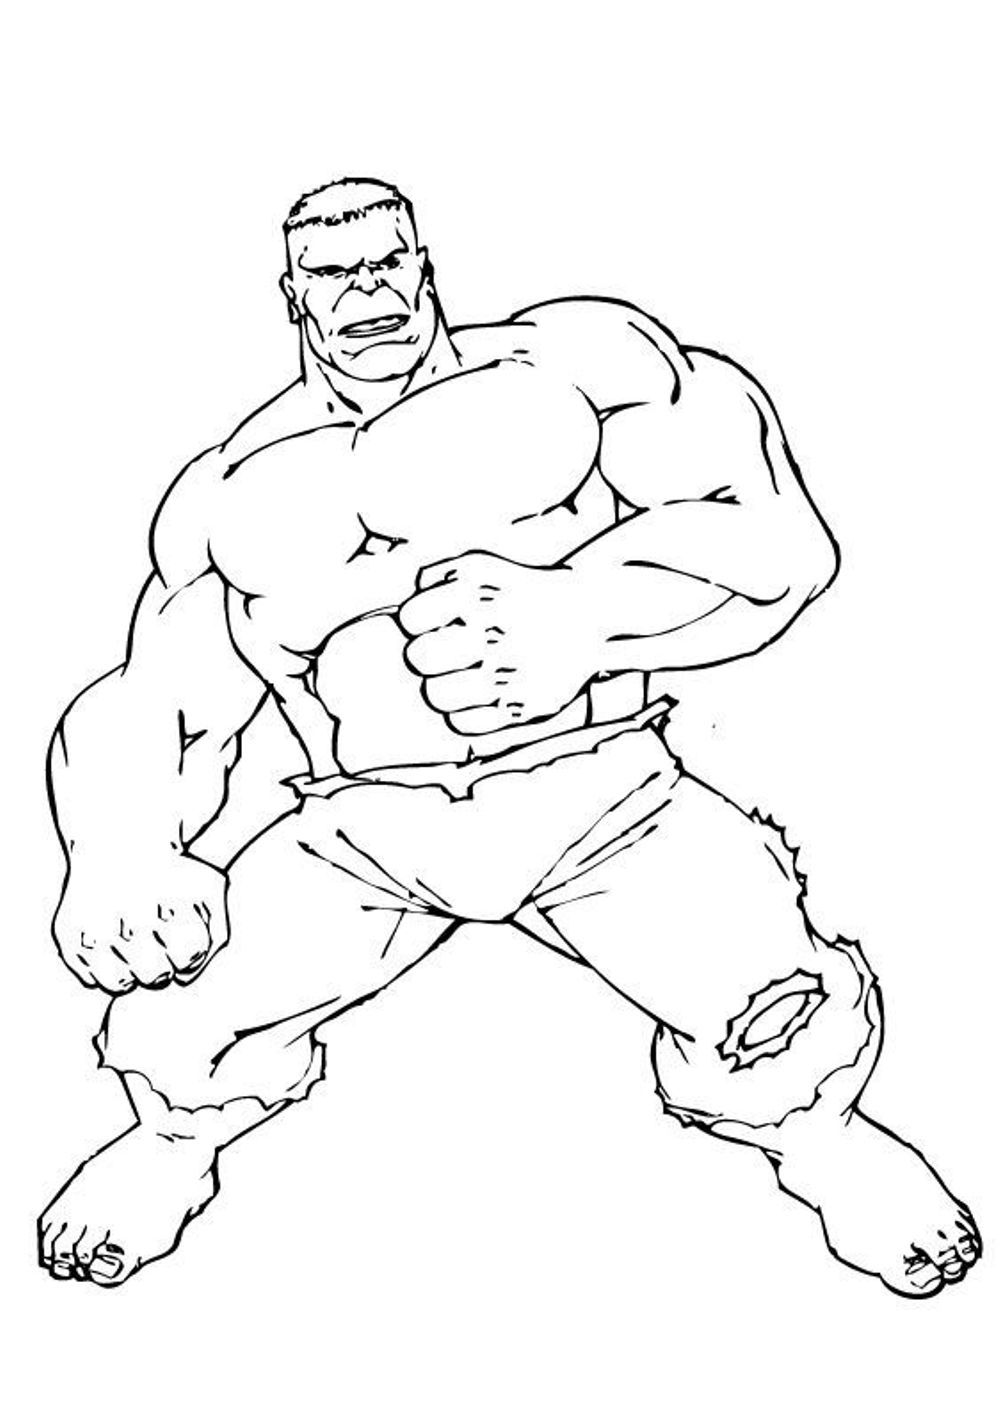 Superhero Coloring Pages For Preschoolers - Coloring Pages